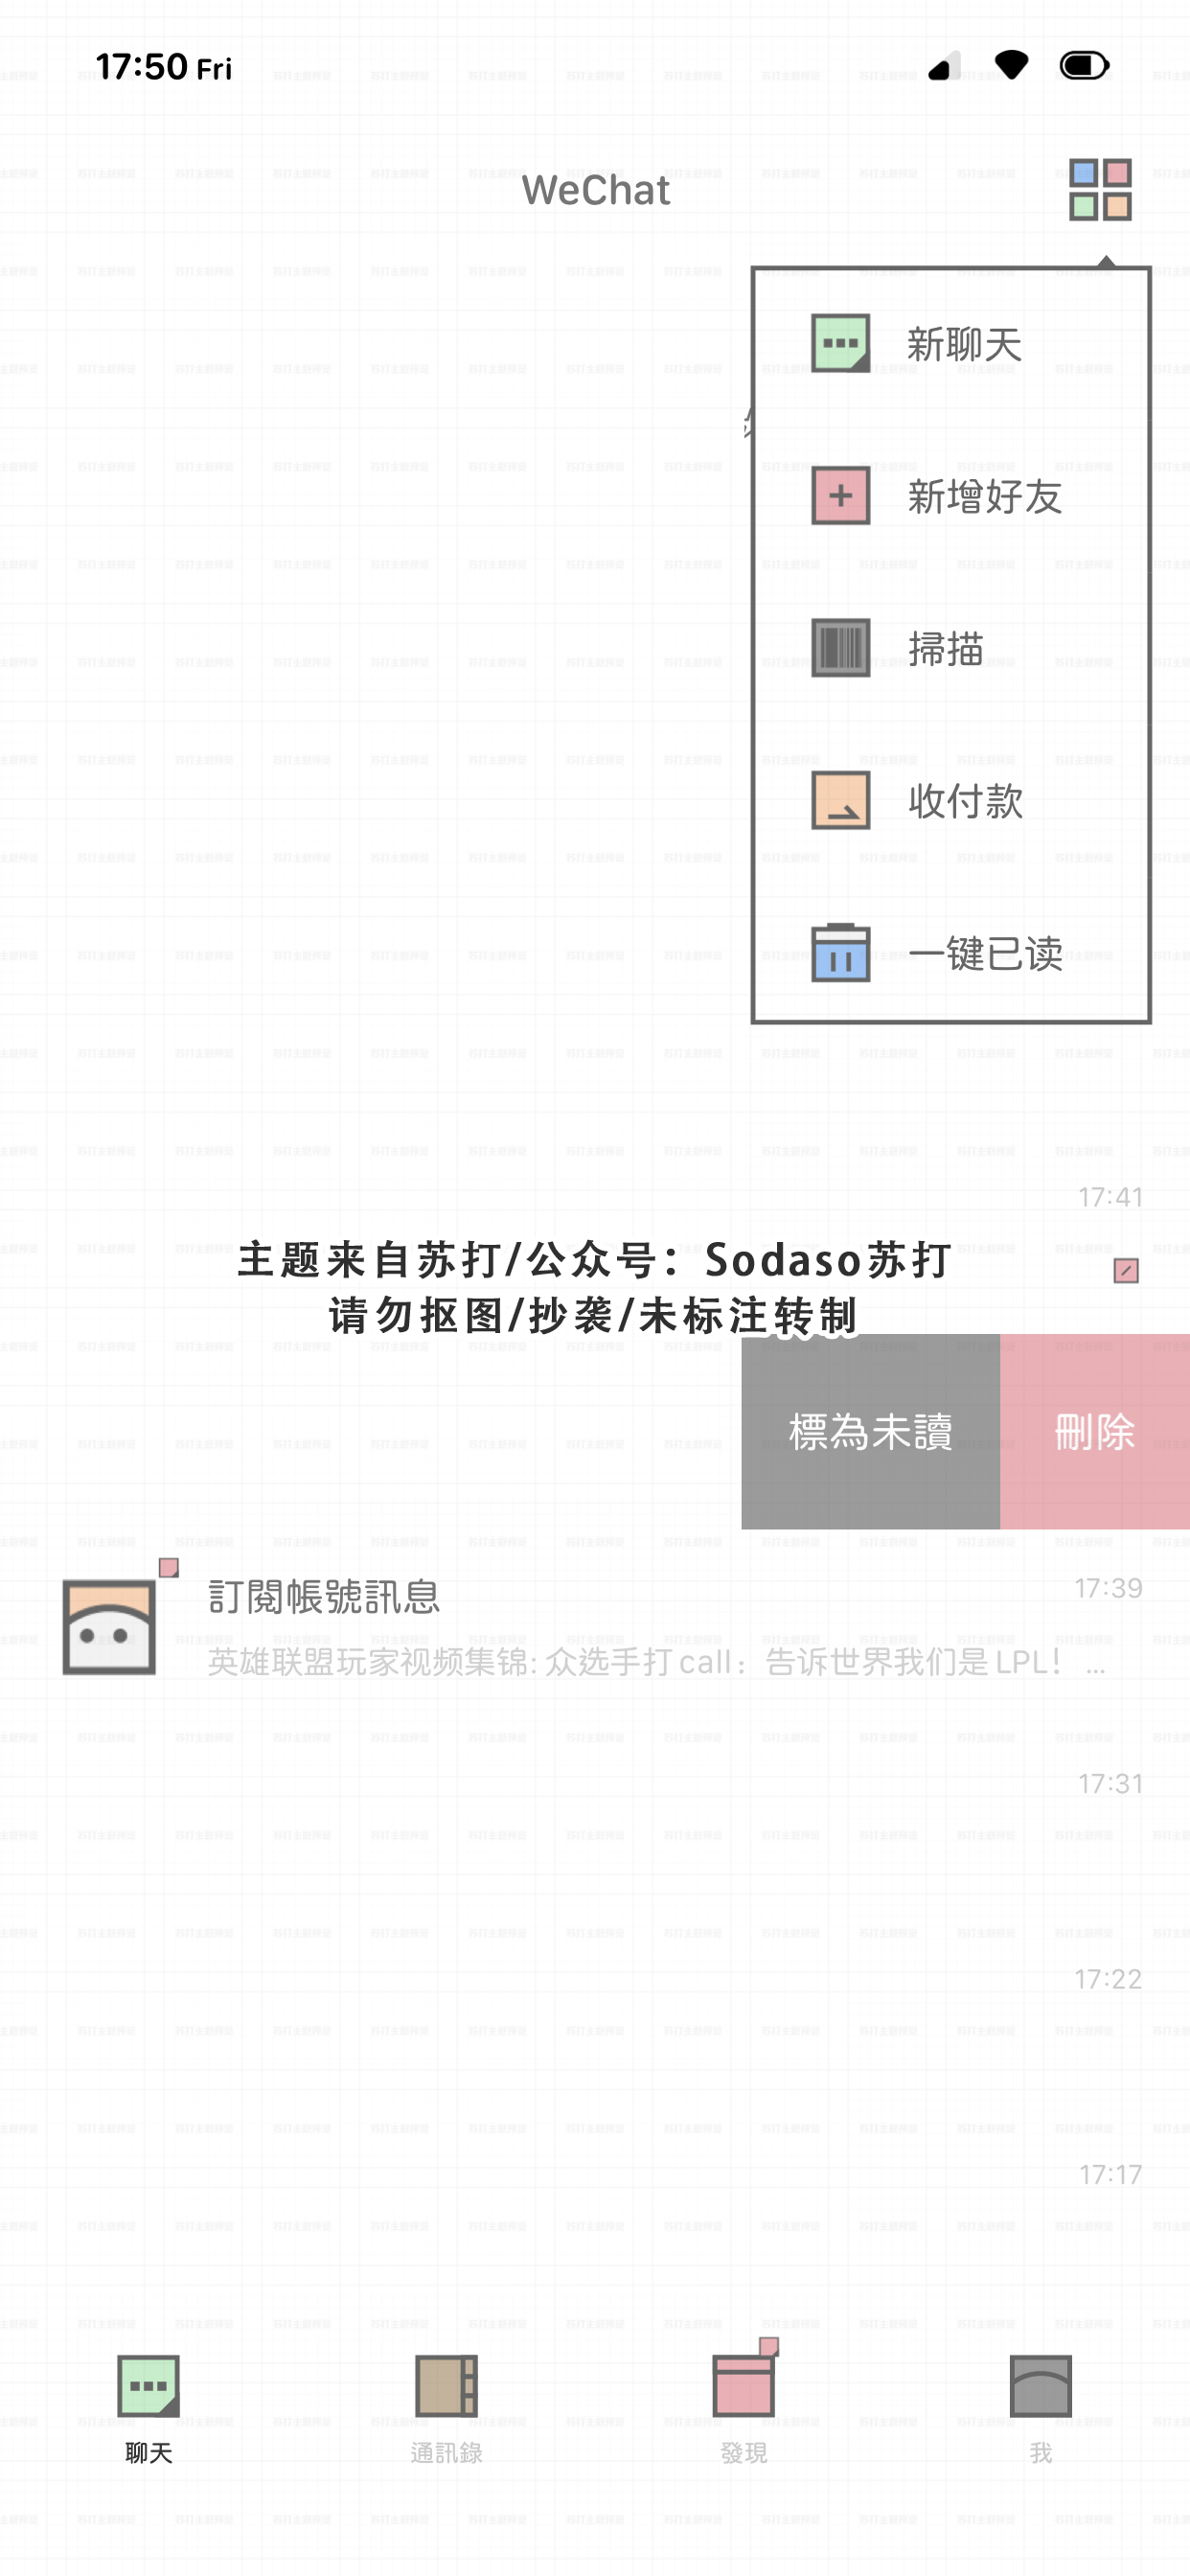 Square WeChat Theme(微信主题) - 3.14